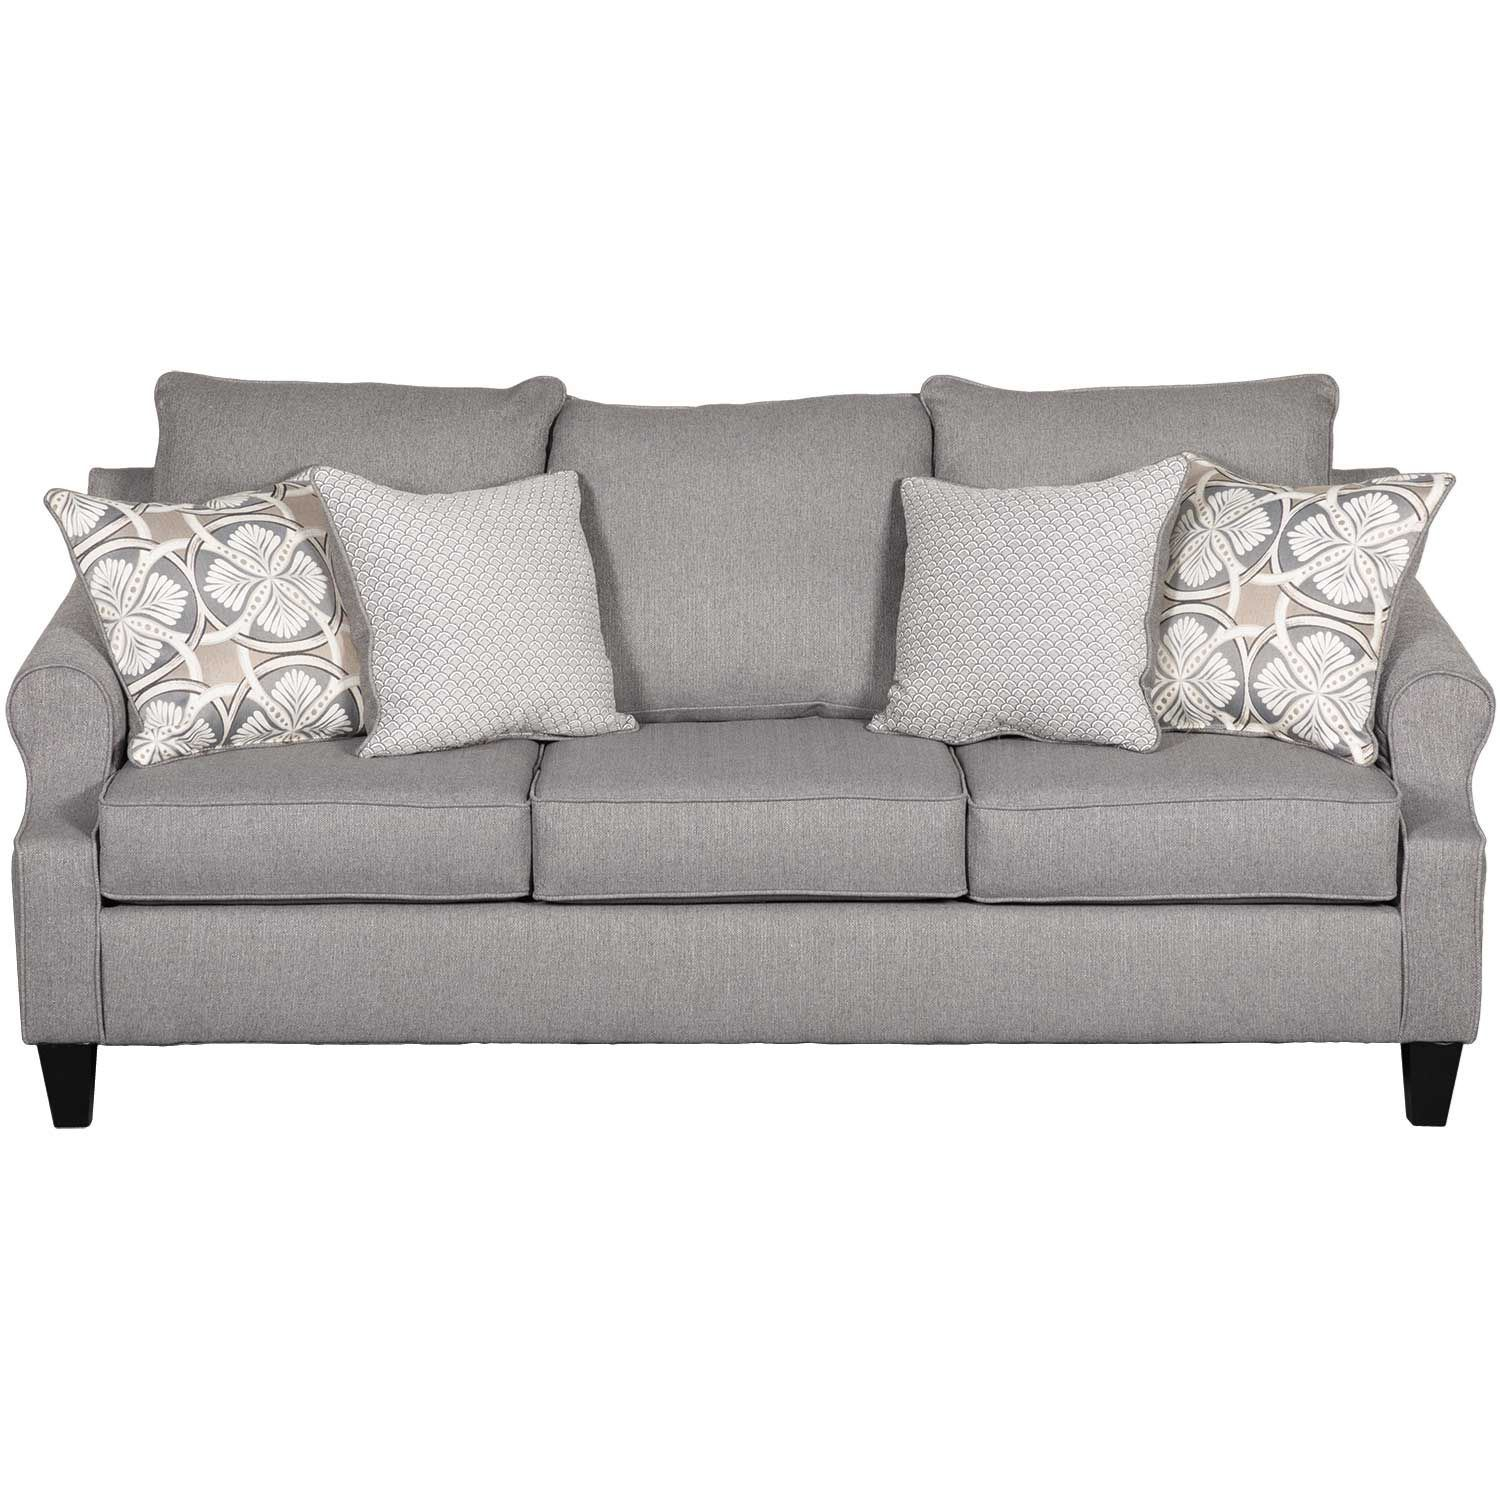 Simmons Sofa Bed The Bay Review Home Co